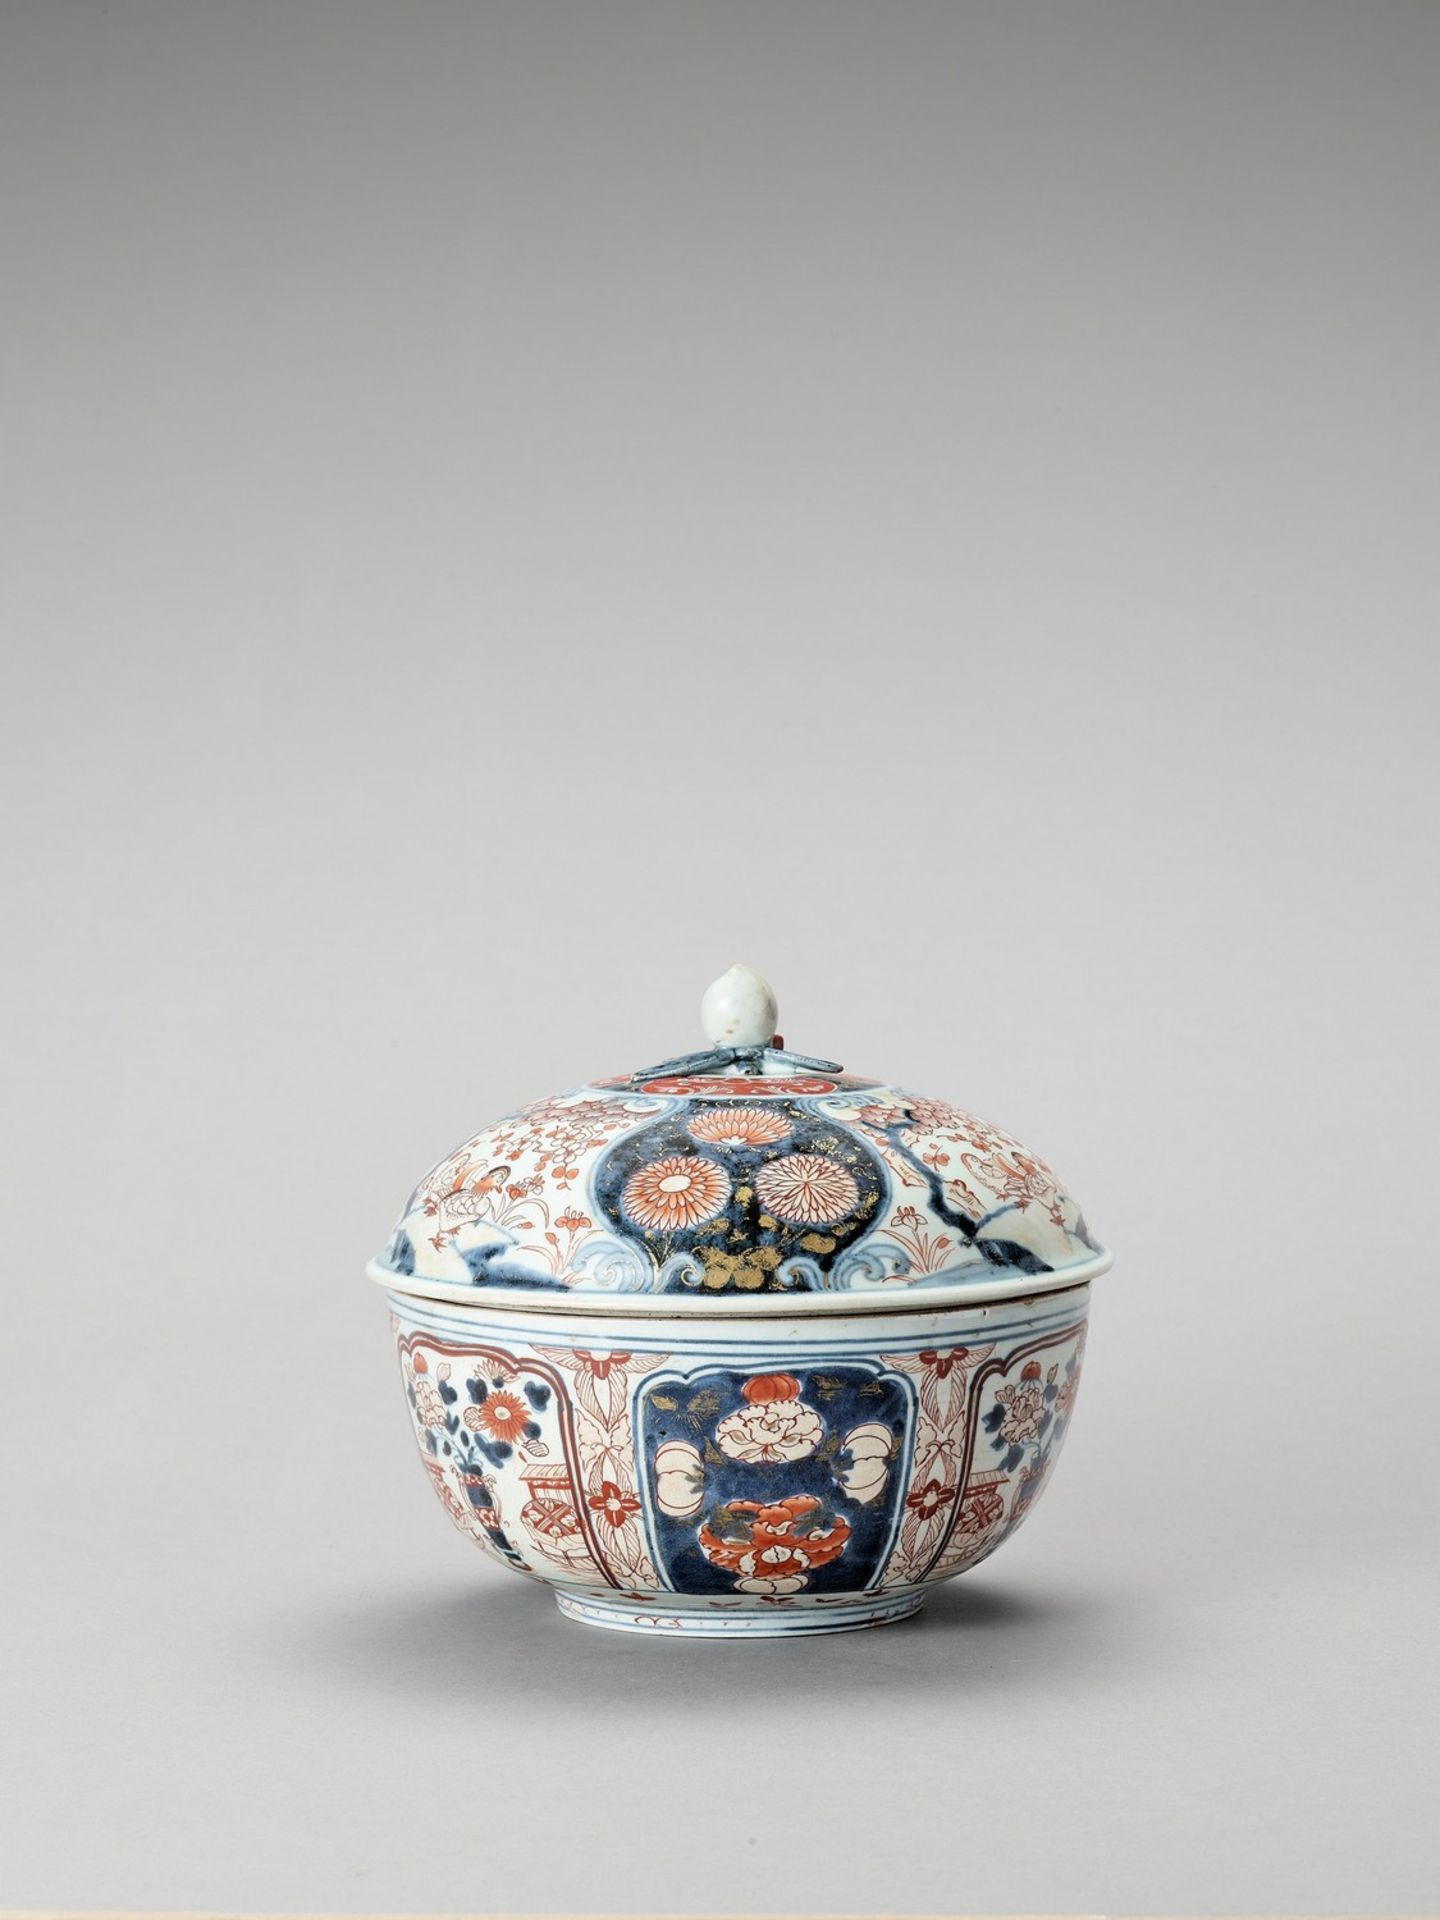 AN IMARI PORCELAIN BOX WITH COVER - Image 3 of 7